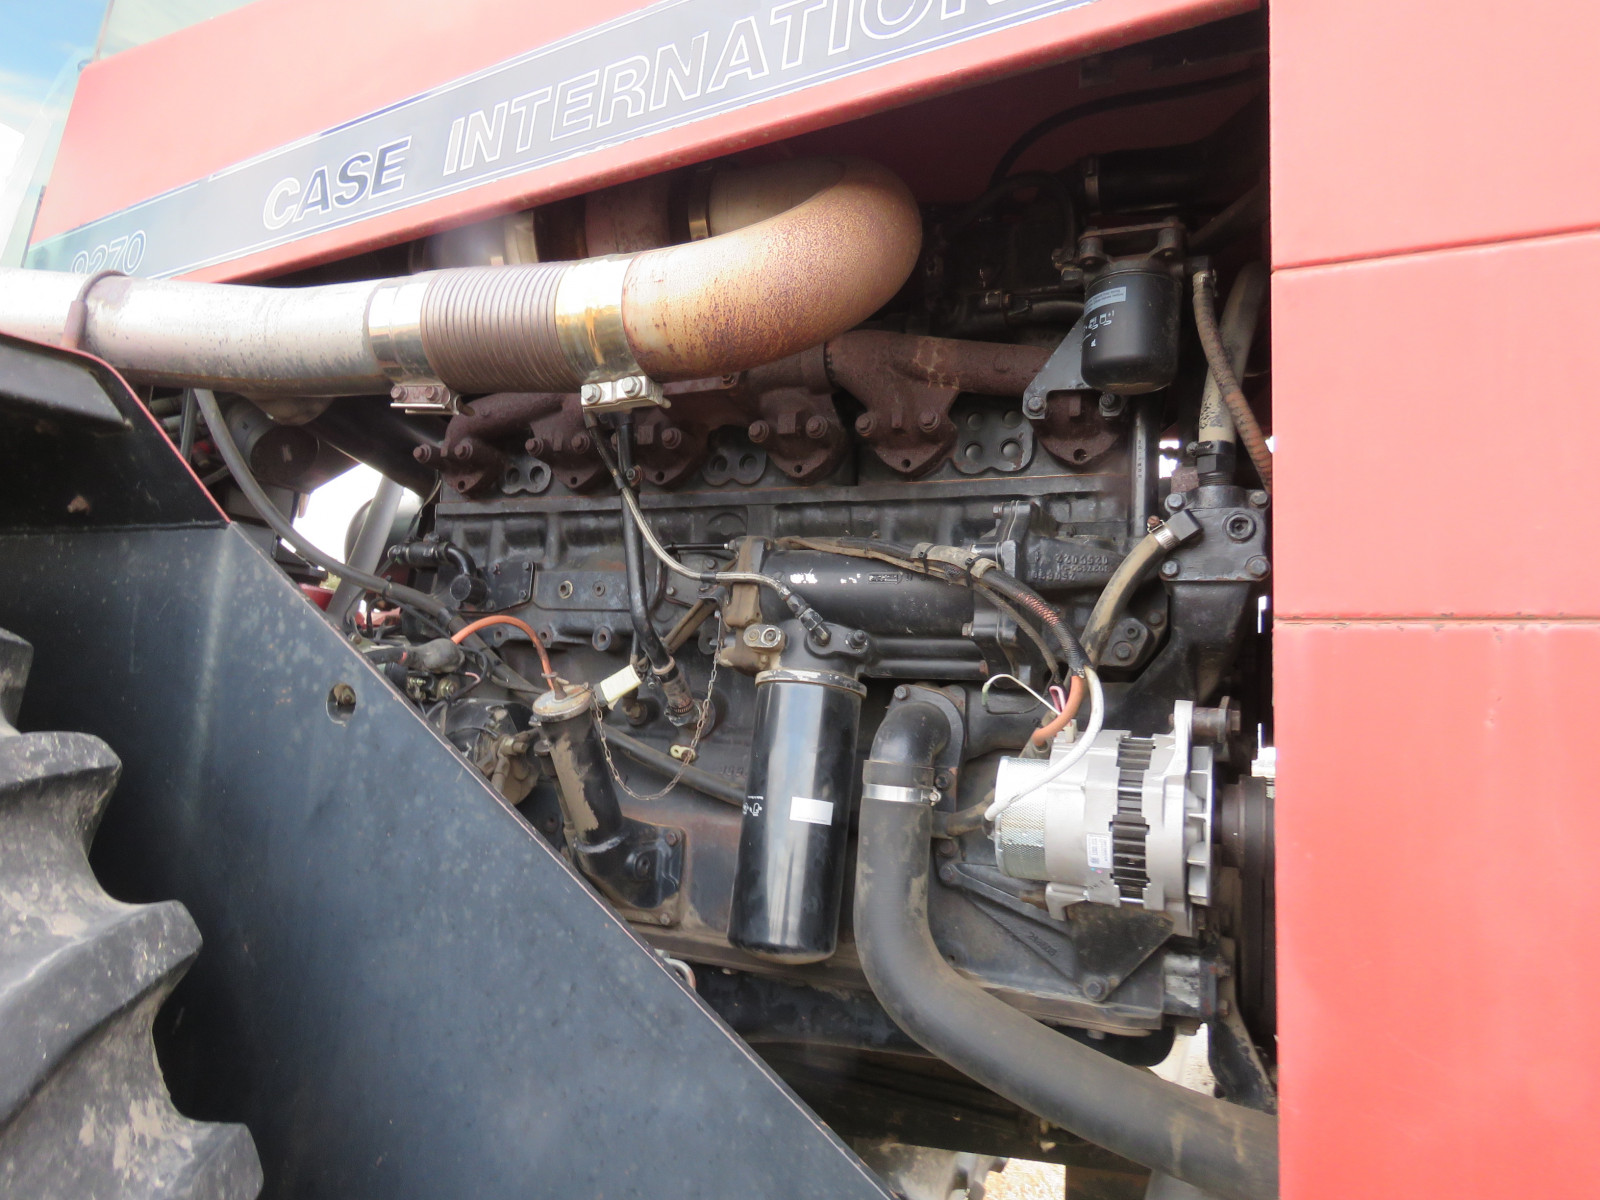 CASE-IH 1991 9270 4WD Tractor JCB0026904 - Image 3